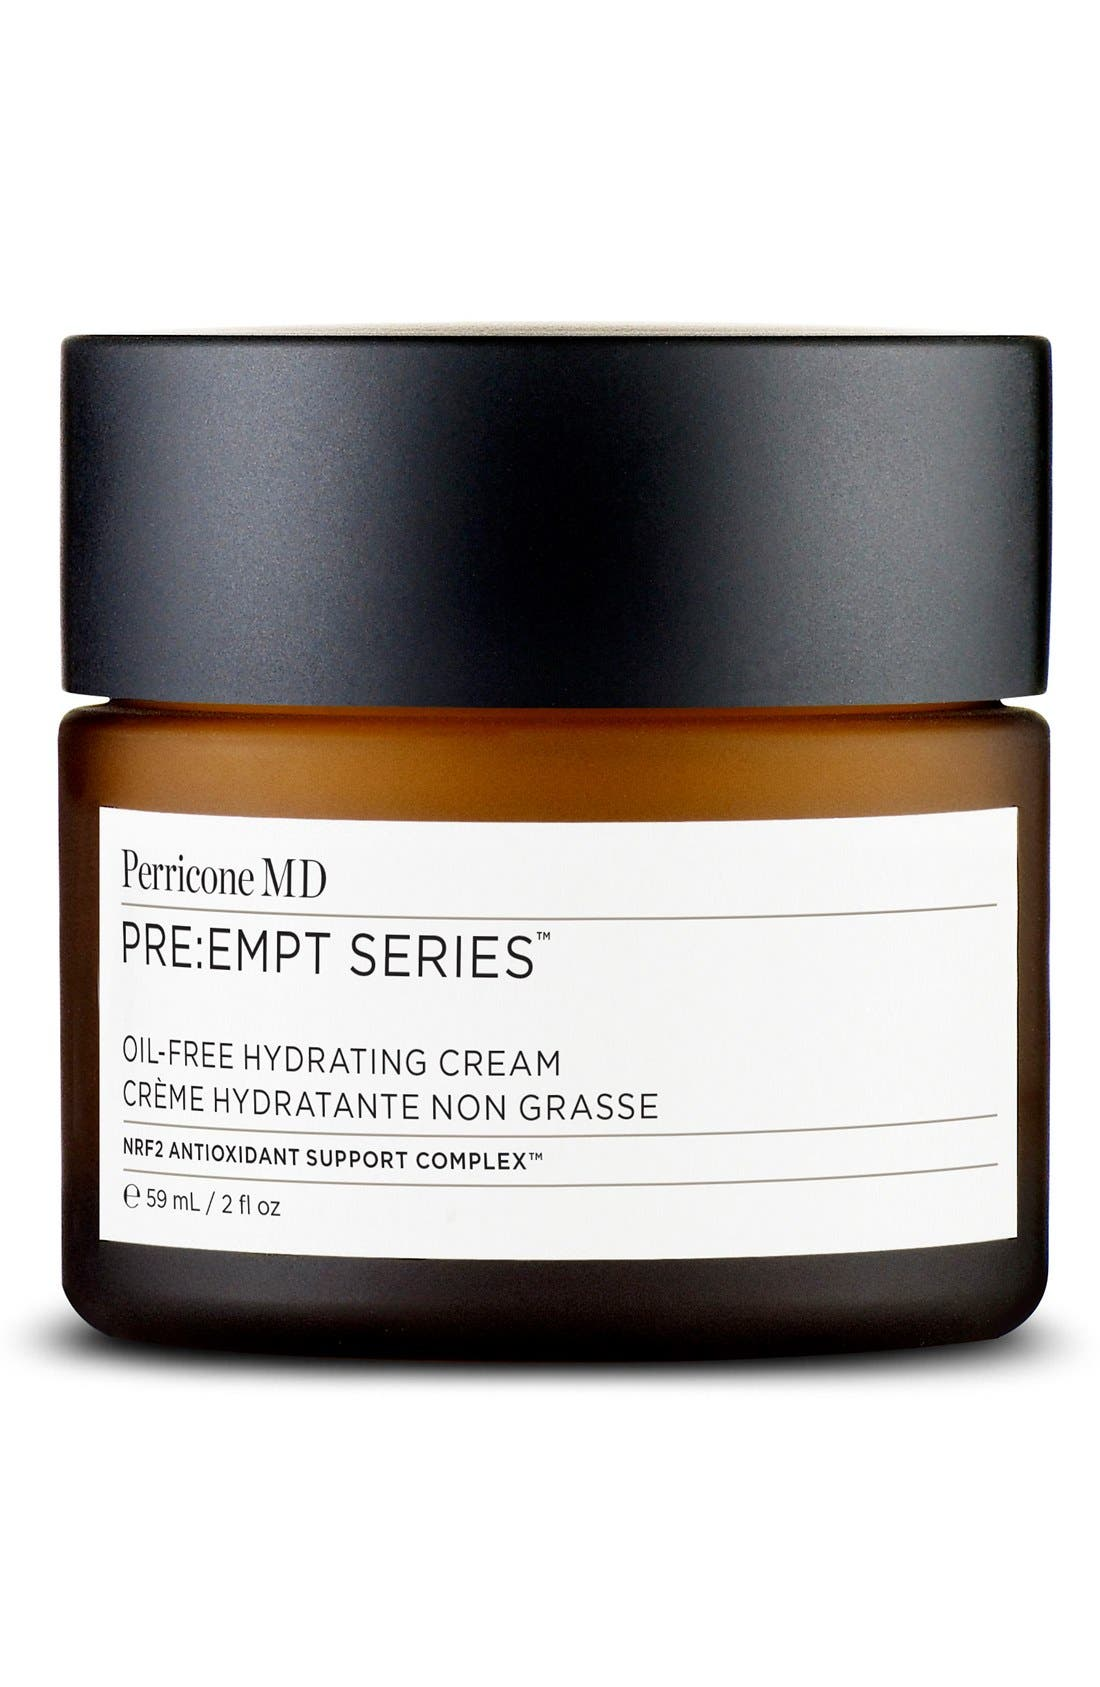 Perricone MD PRE EMPT SERIES™ Oil-Free Hydrating Cream